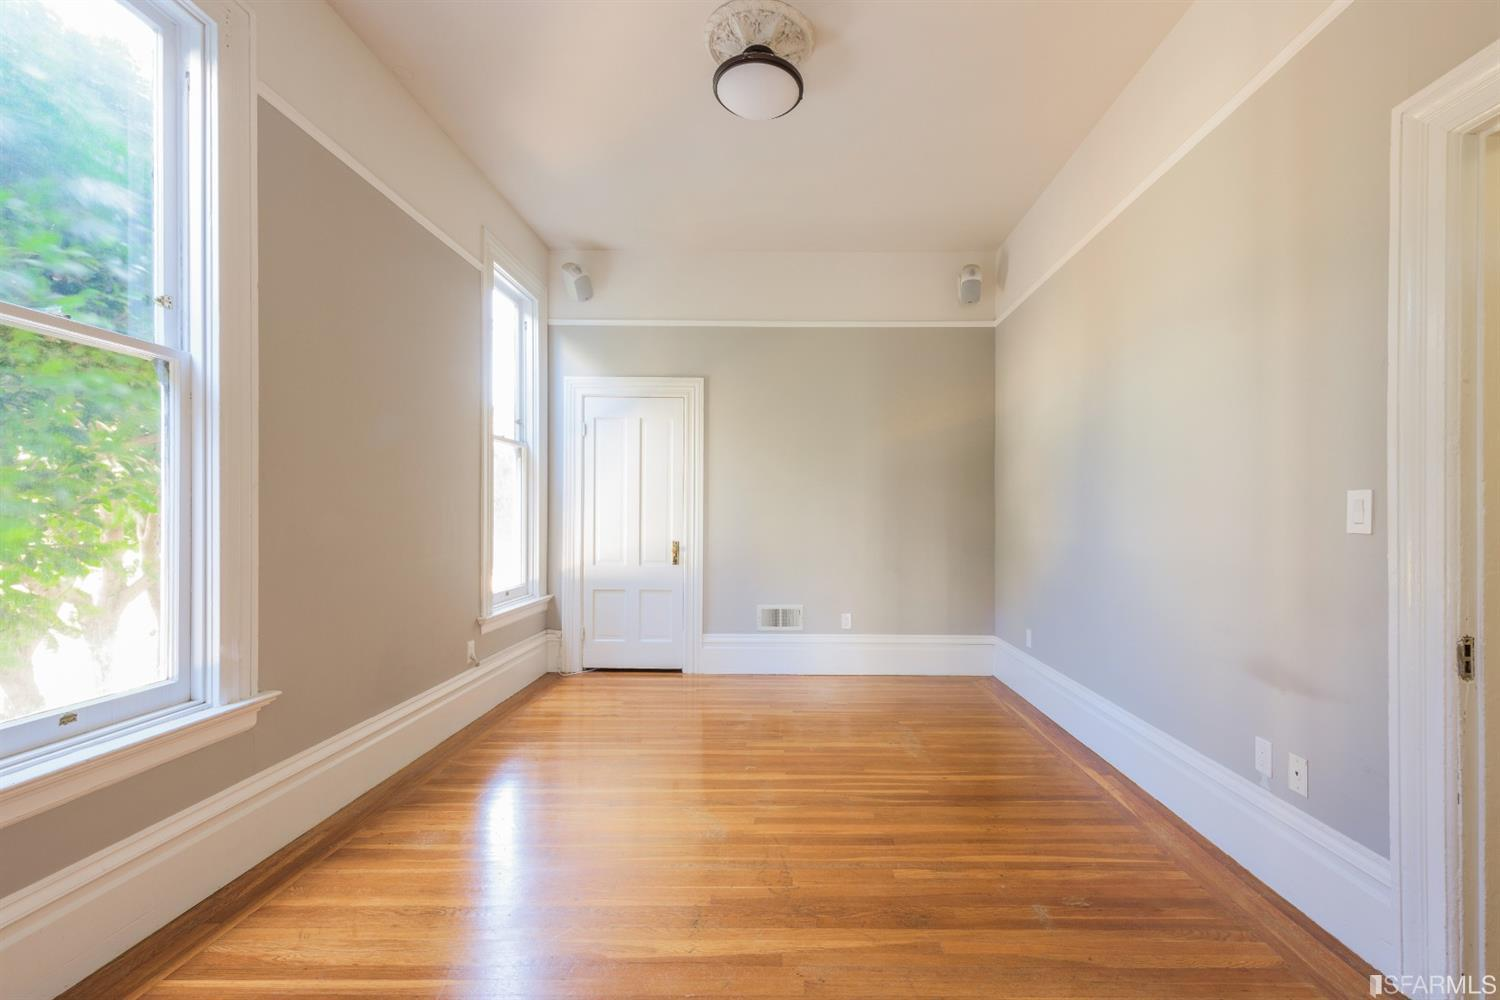 SOLD | 212 Steiner | Hayes Valley / Lower Haight | $1,250,000